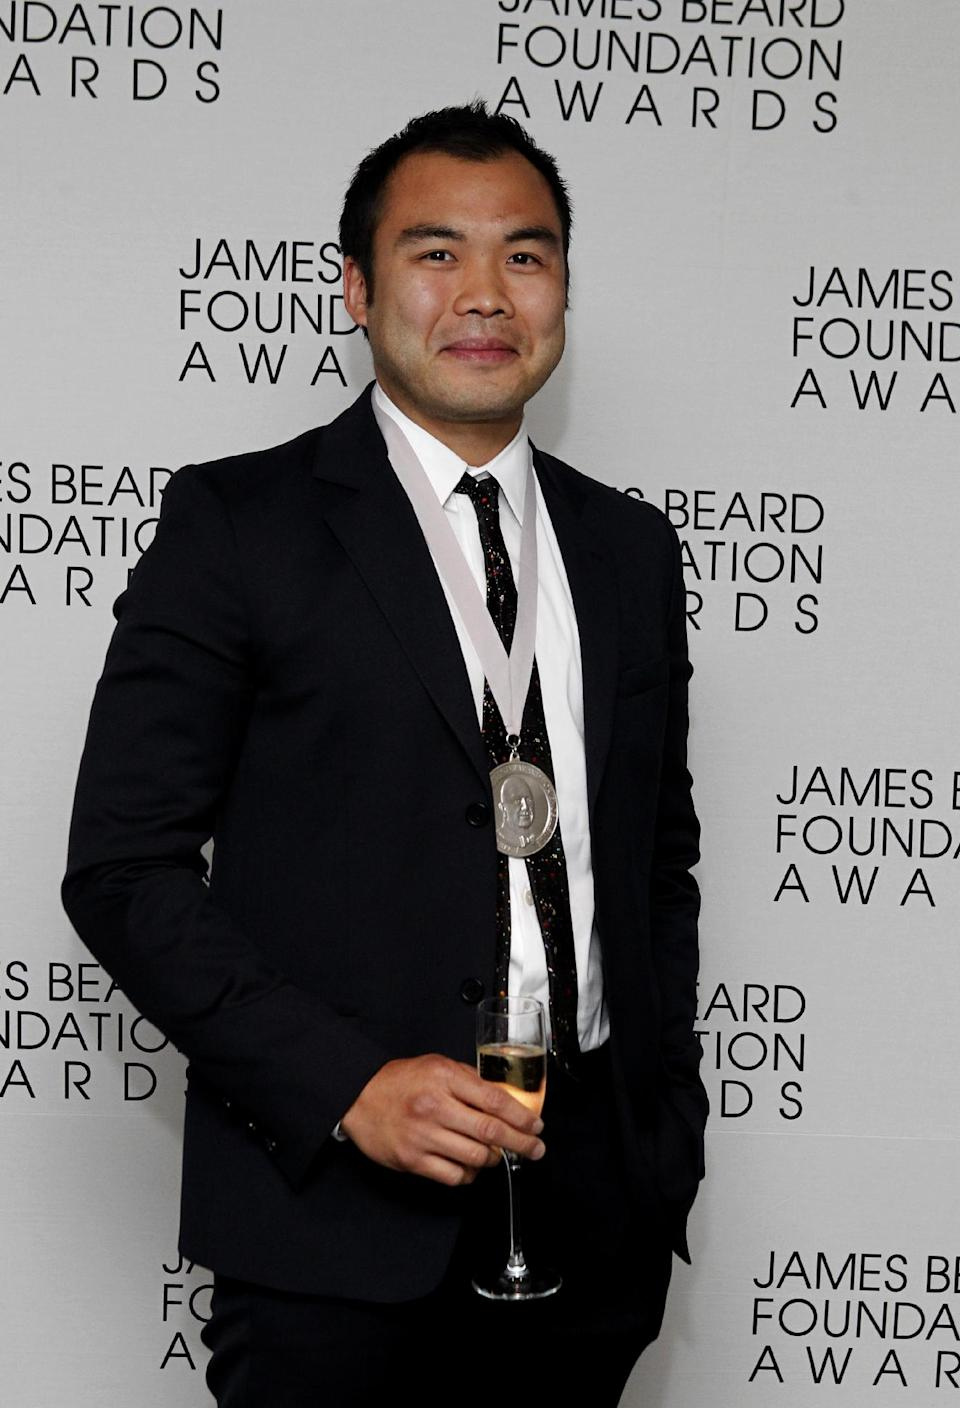 Chef Paul Qui poses with his medal for Best Chef: Southeast, during the James Beard Foundation Awards, Monday, May 7, 2012, in New York. (AP Photo/Jason DeCrow)